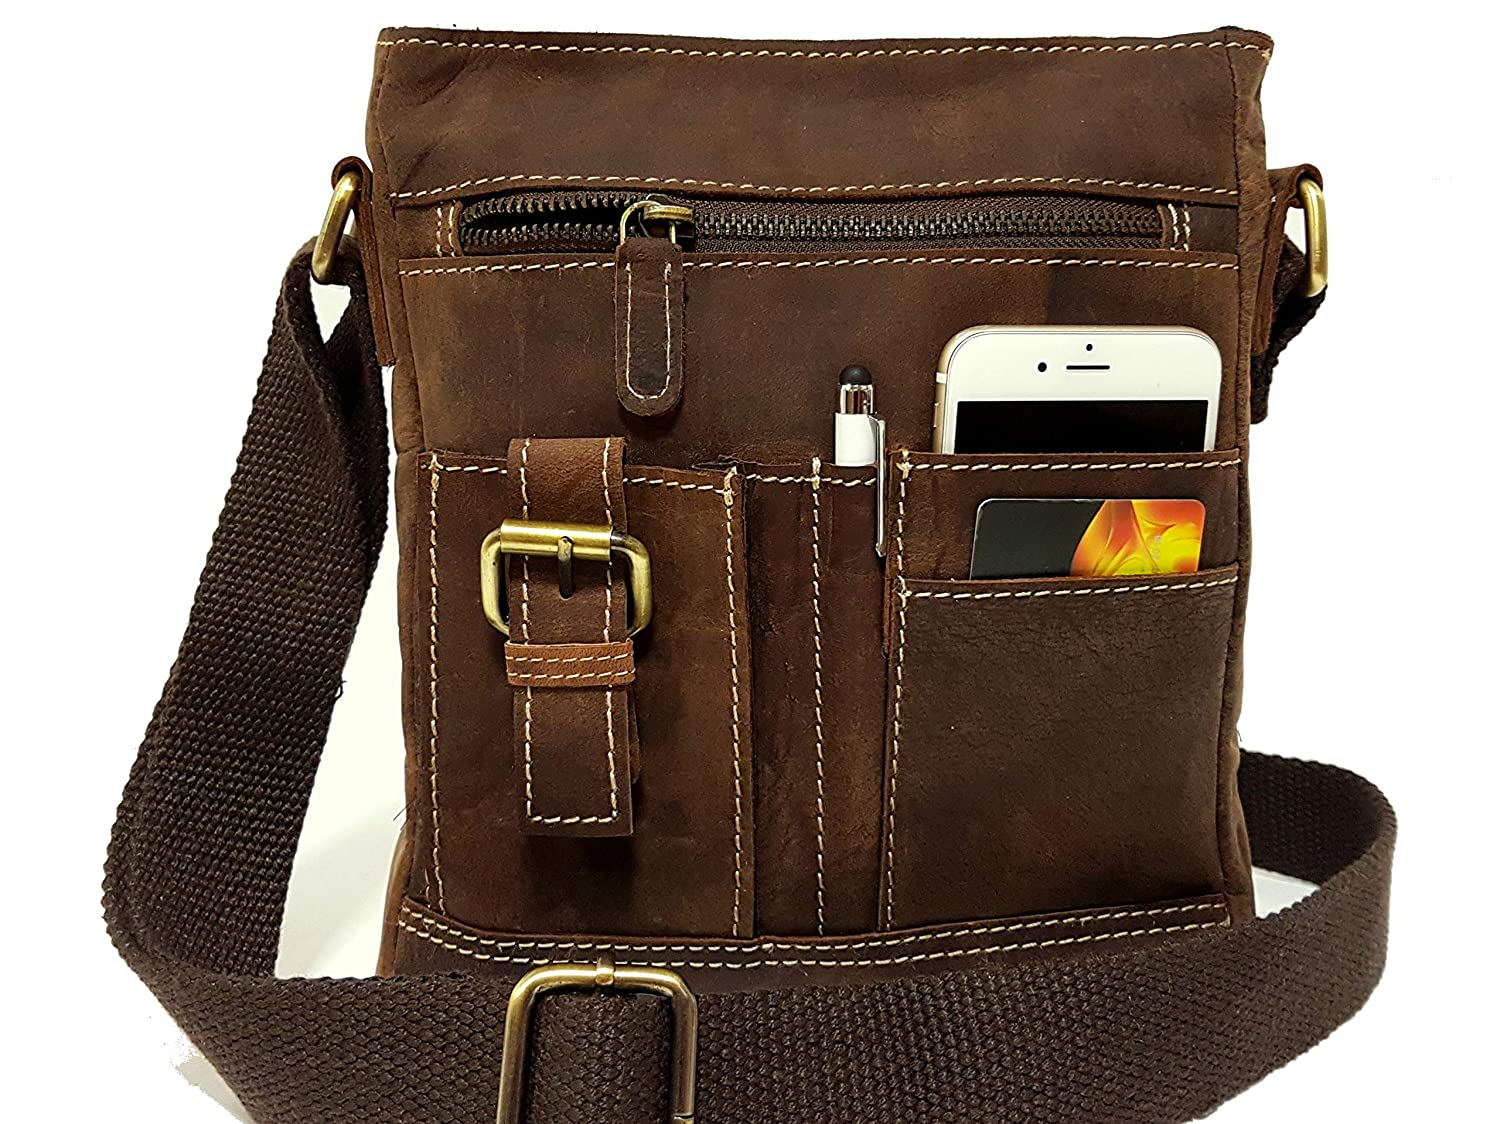 Leather Max 65% OFF Crossbody Selling rankings Bags for Women Adju Real Small Vintage